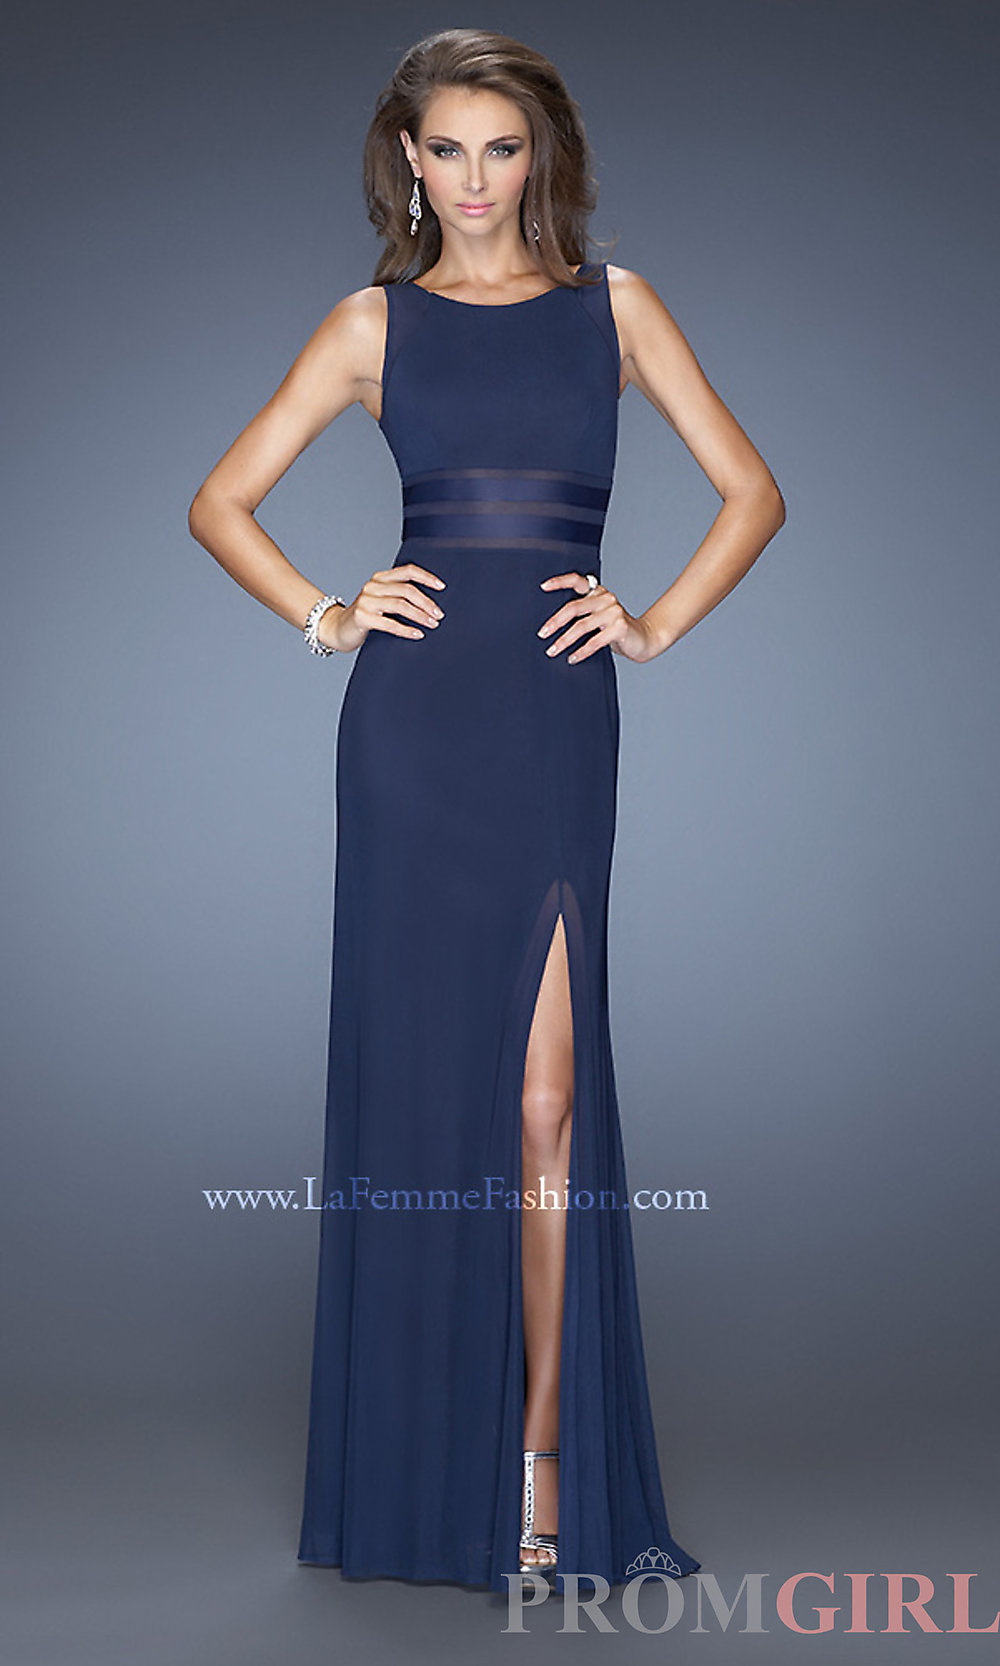 Latest Fancy Gowns, Prom and Cocktail dresses for Weddings and Parties 2014-2015 (11)